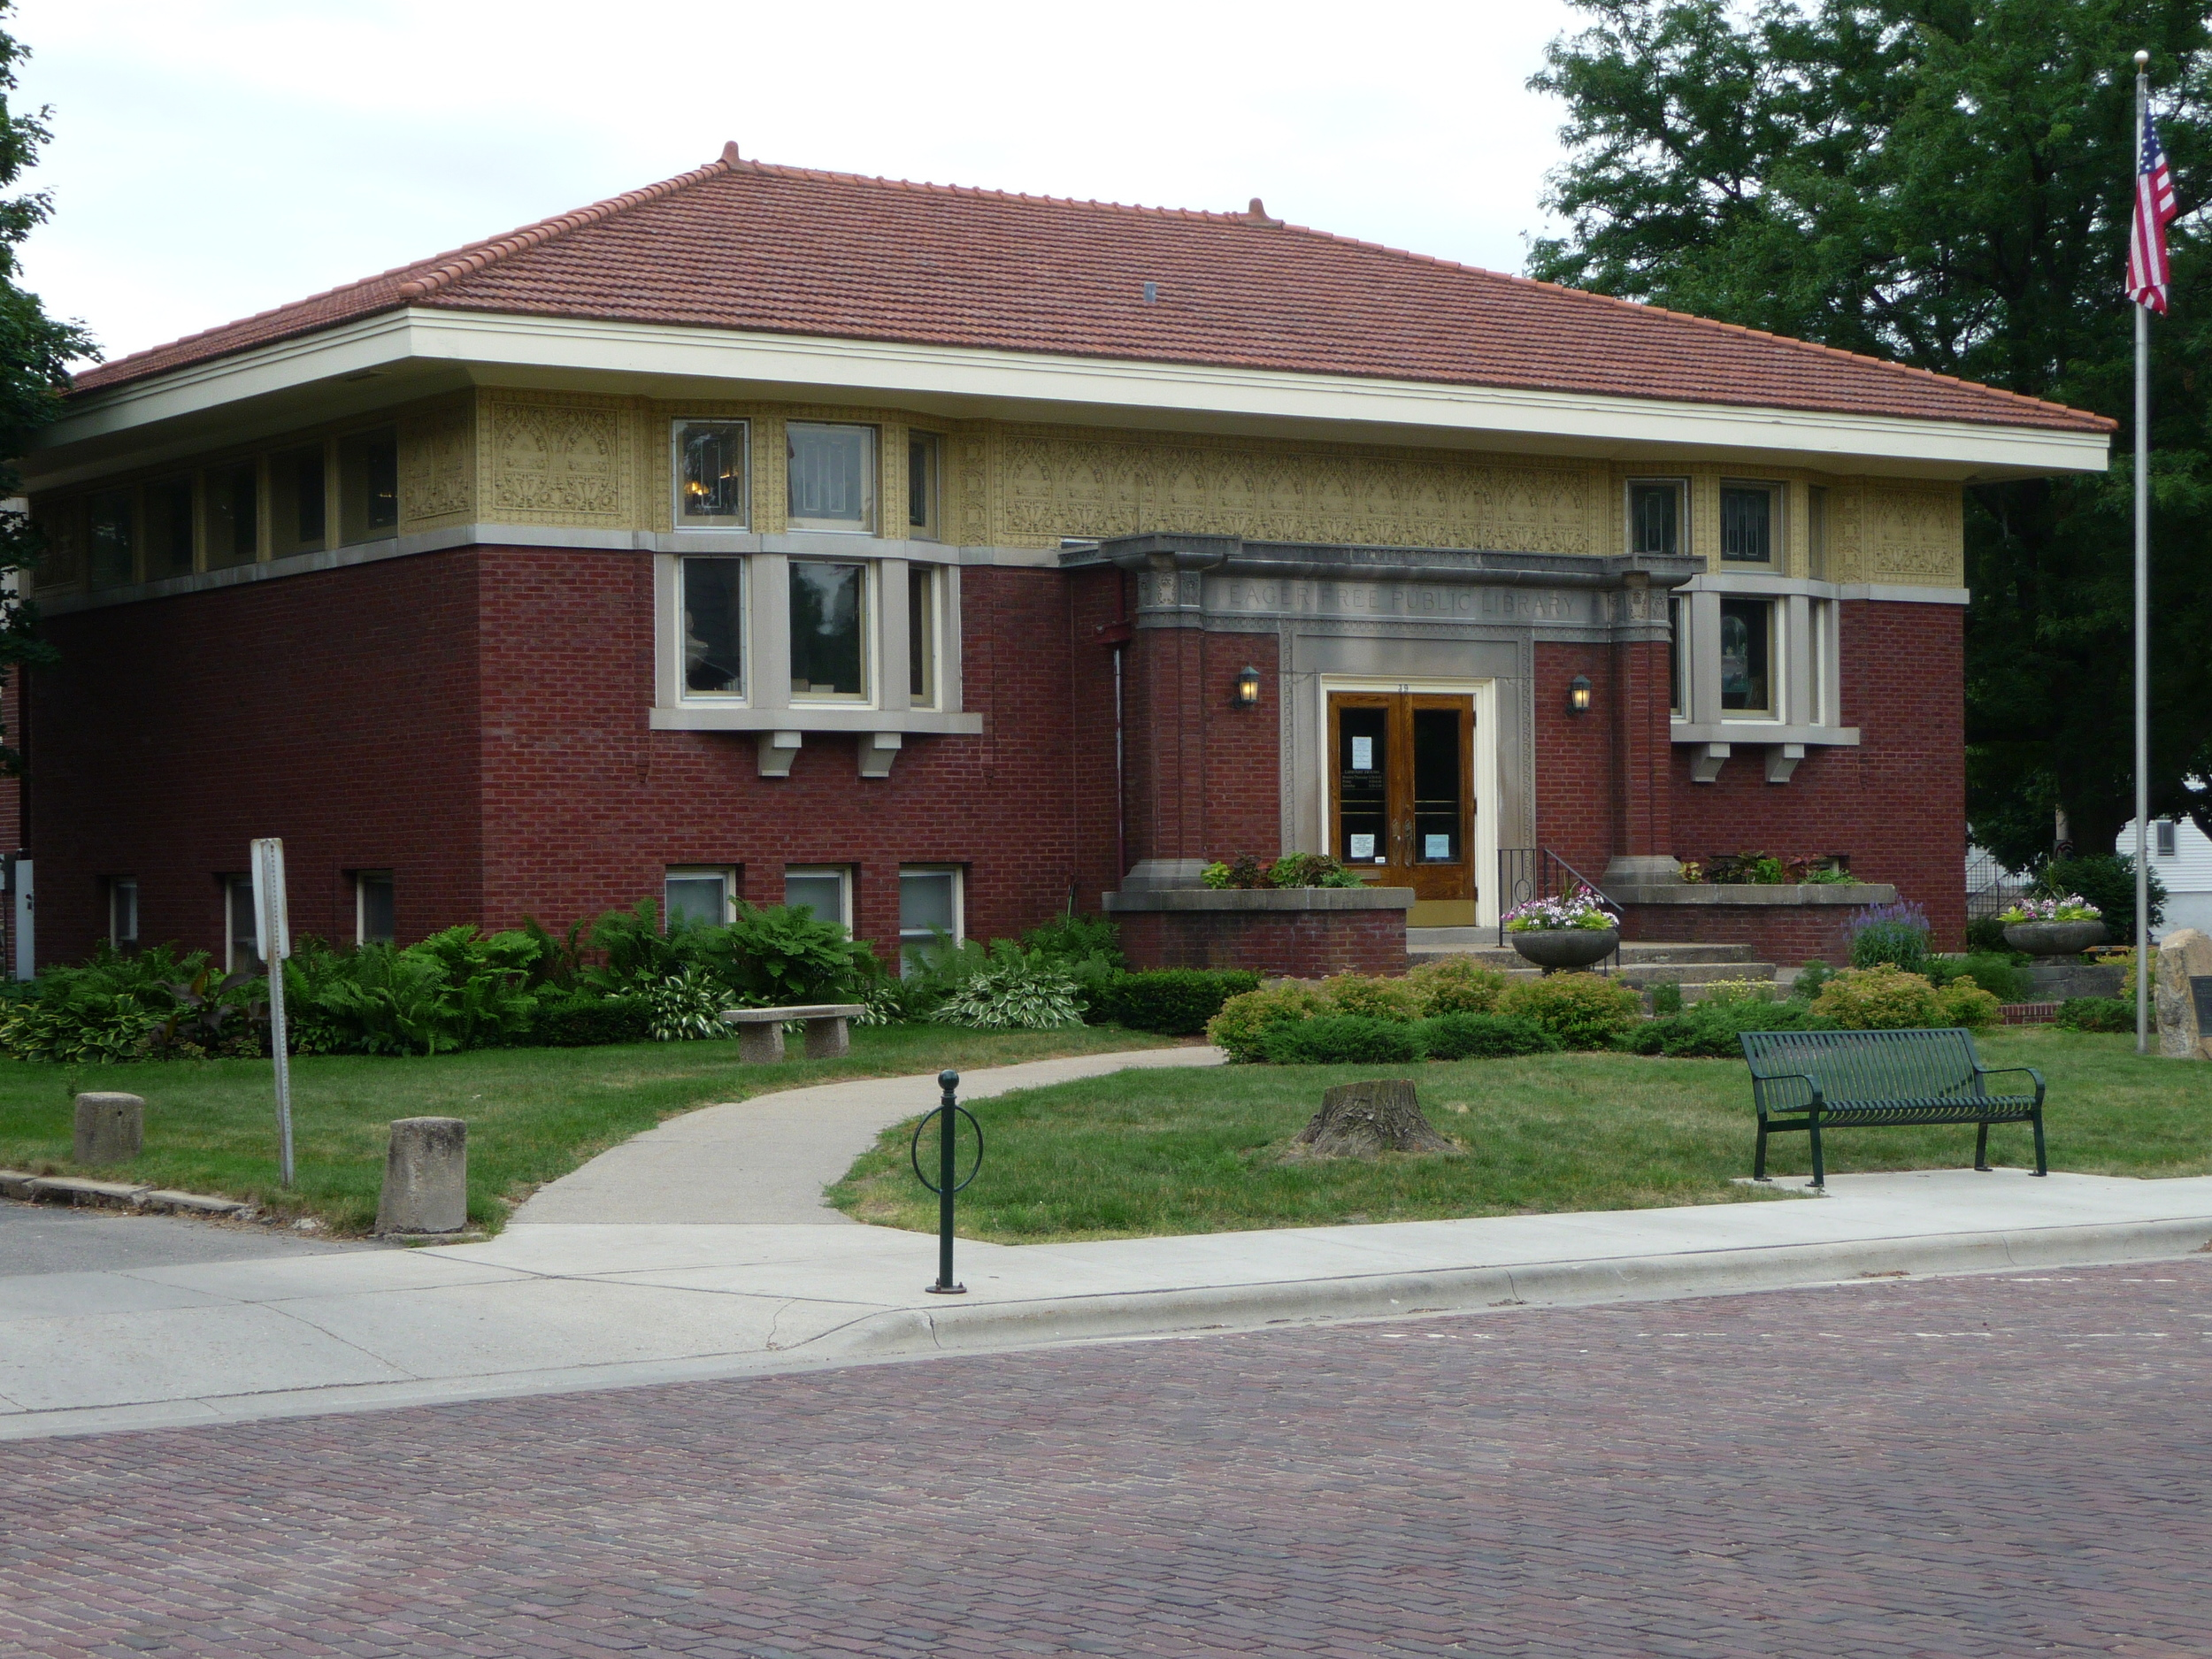 Eager Free Public Library - Evansville